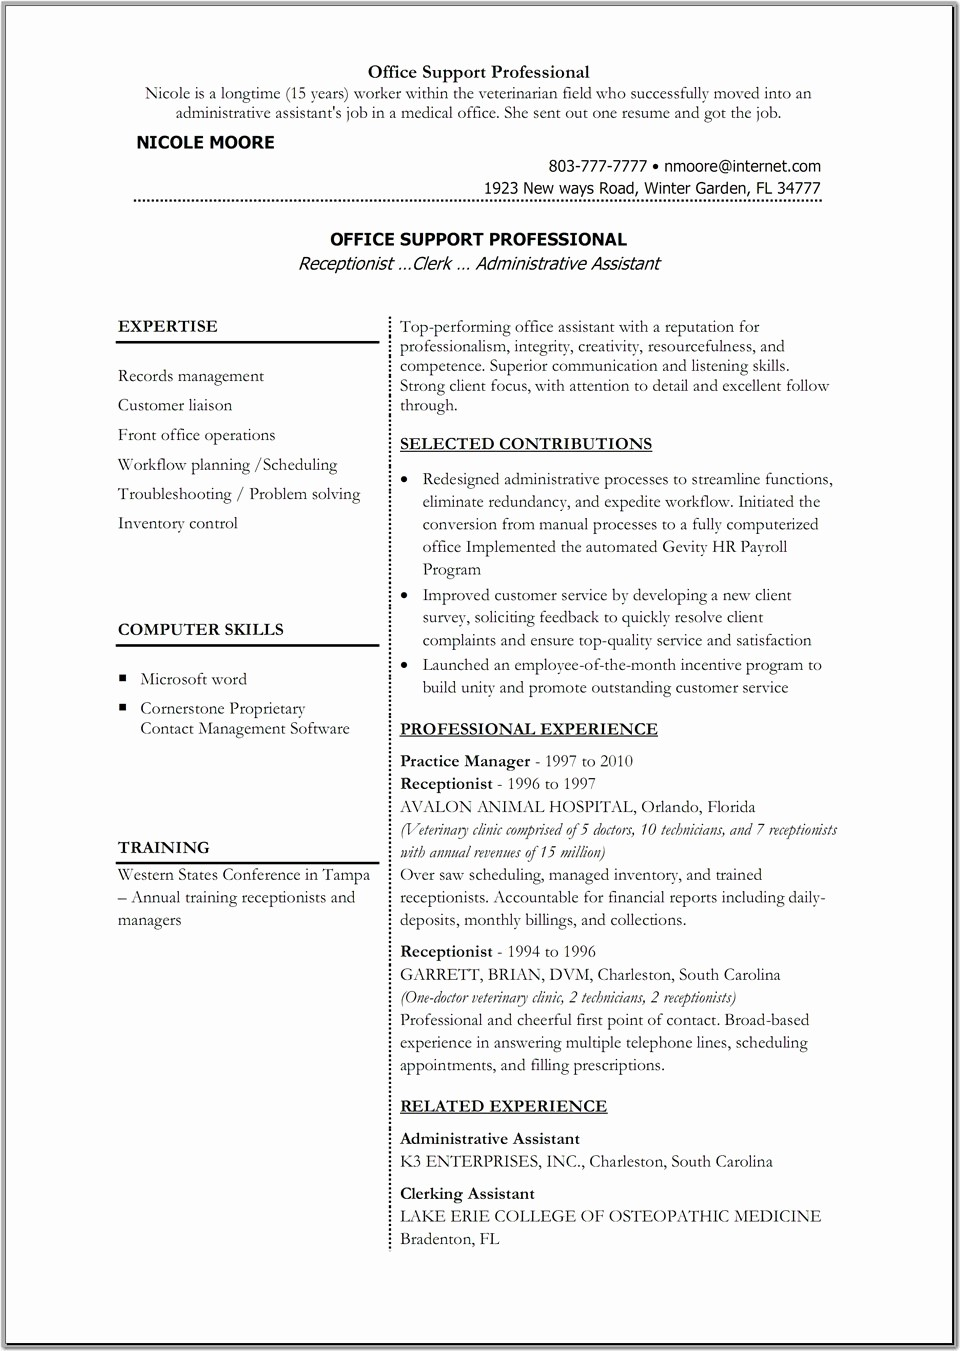 Ms Word 2007 Resume Templates Beautiful Resume Templates Microsoft Word 2007 for Mac